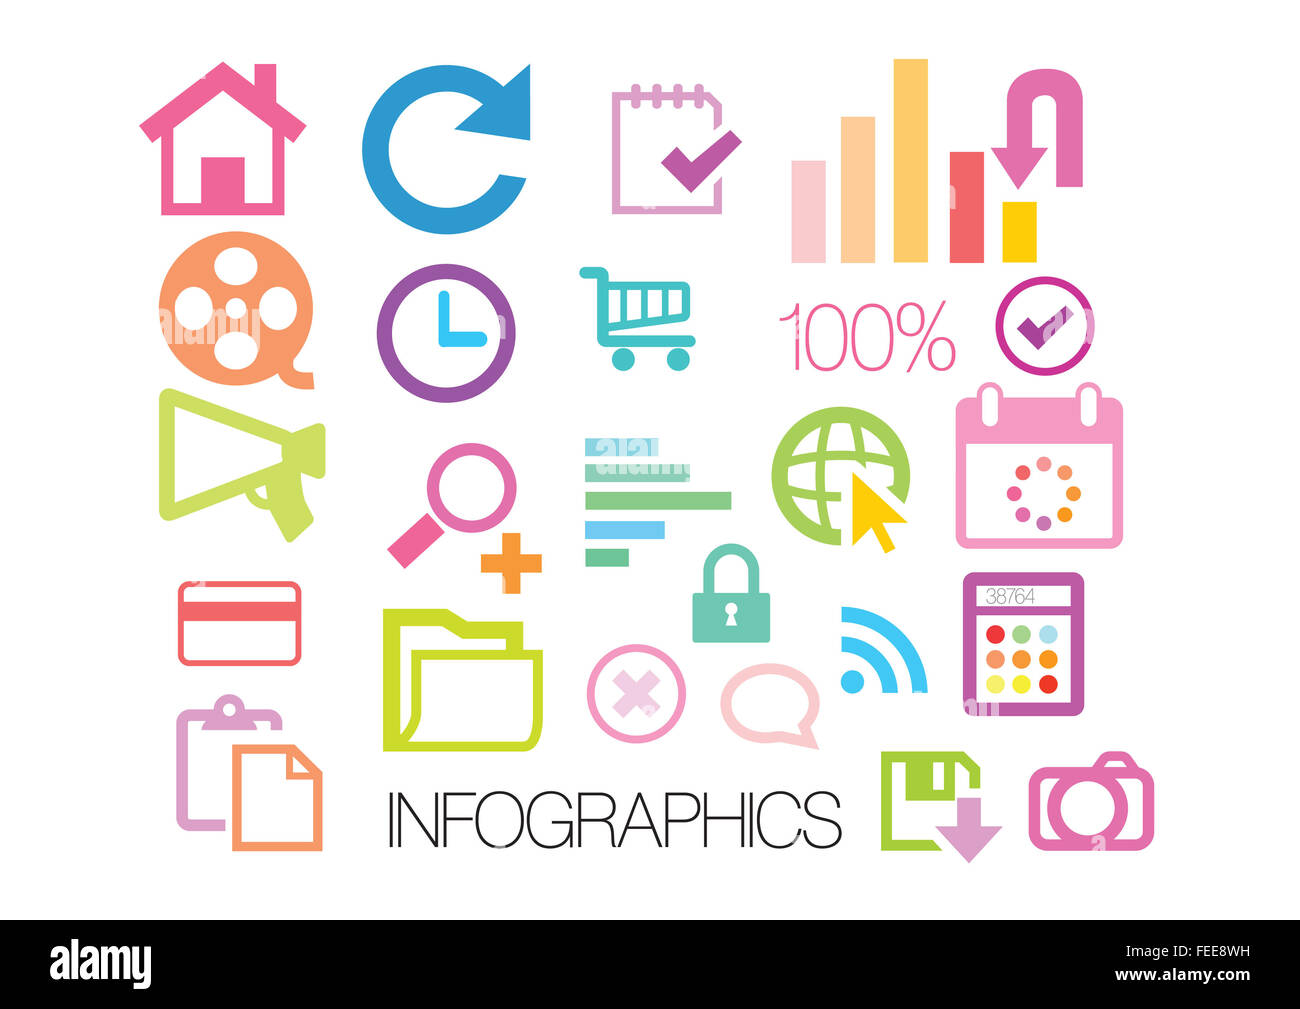 iNFOGRAPHIC Icons - Stock Image